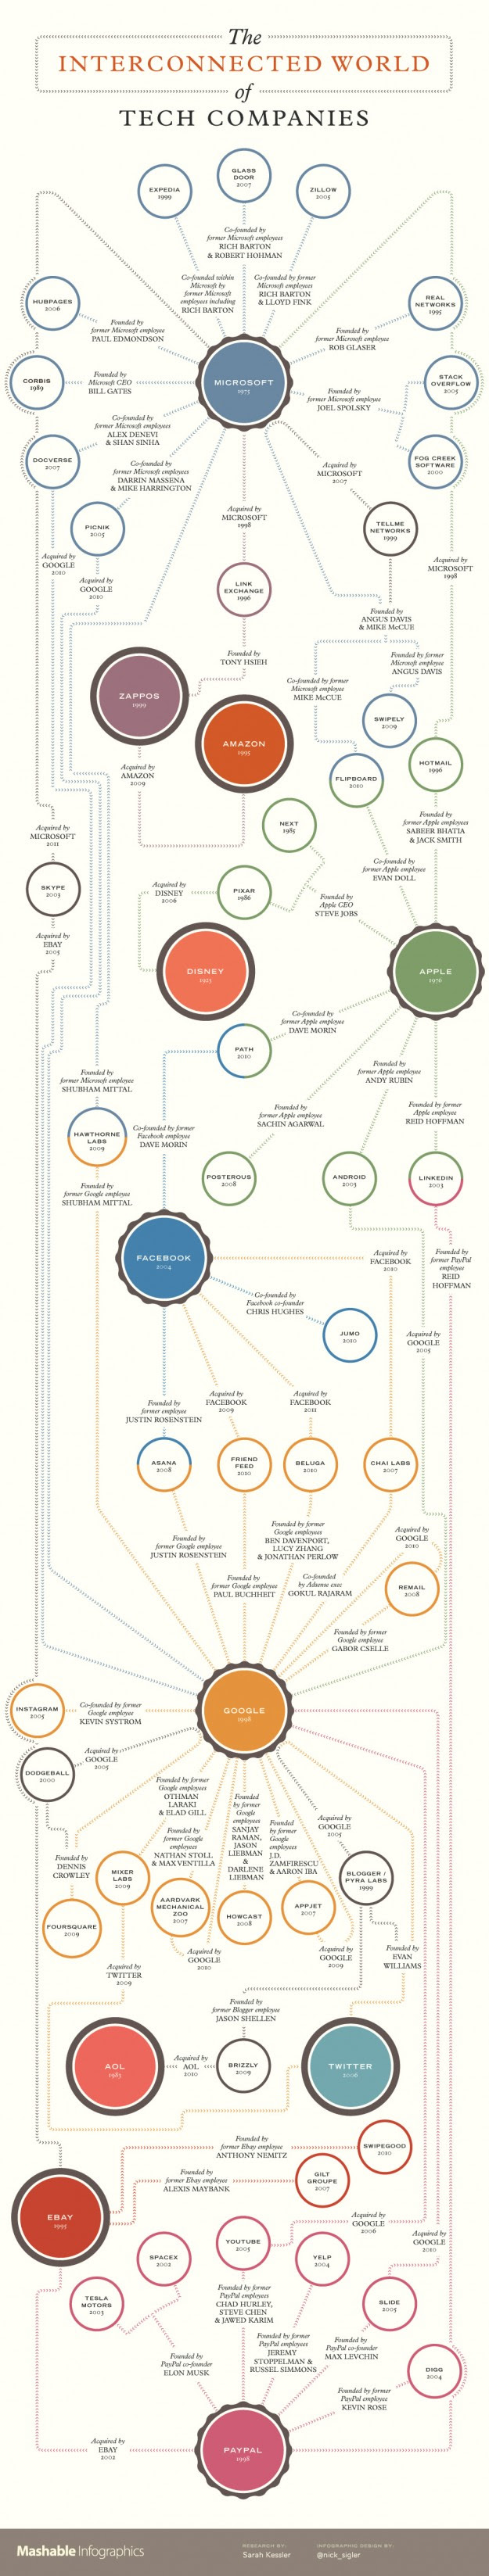 Interconnected tech companies